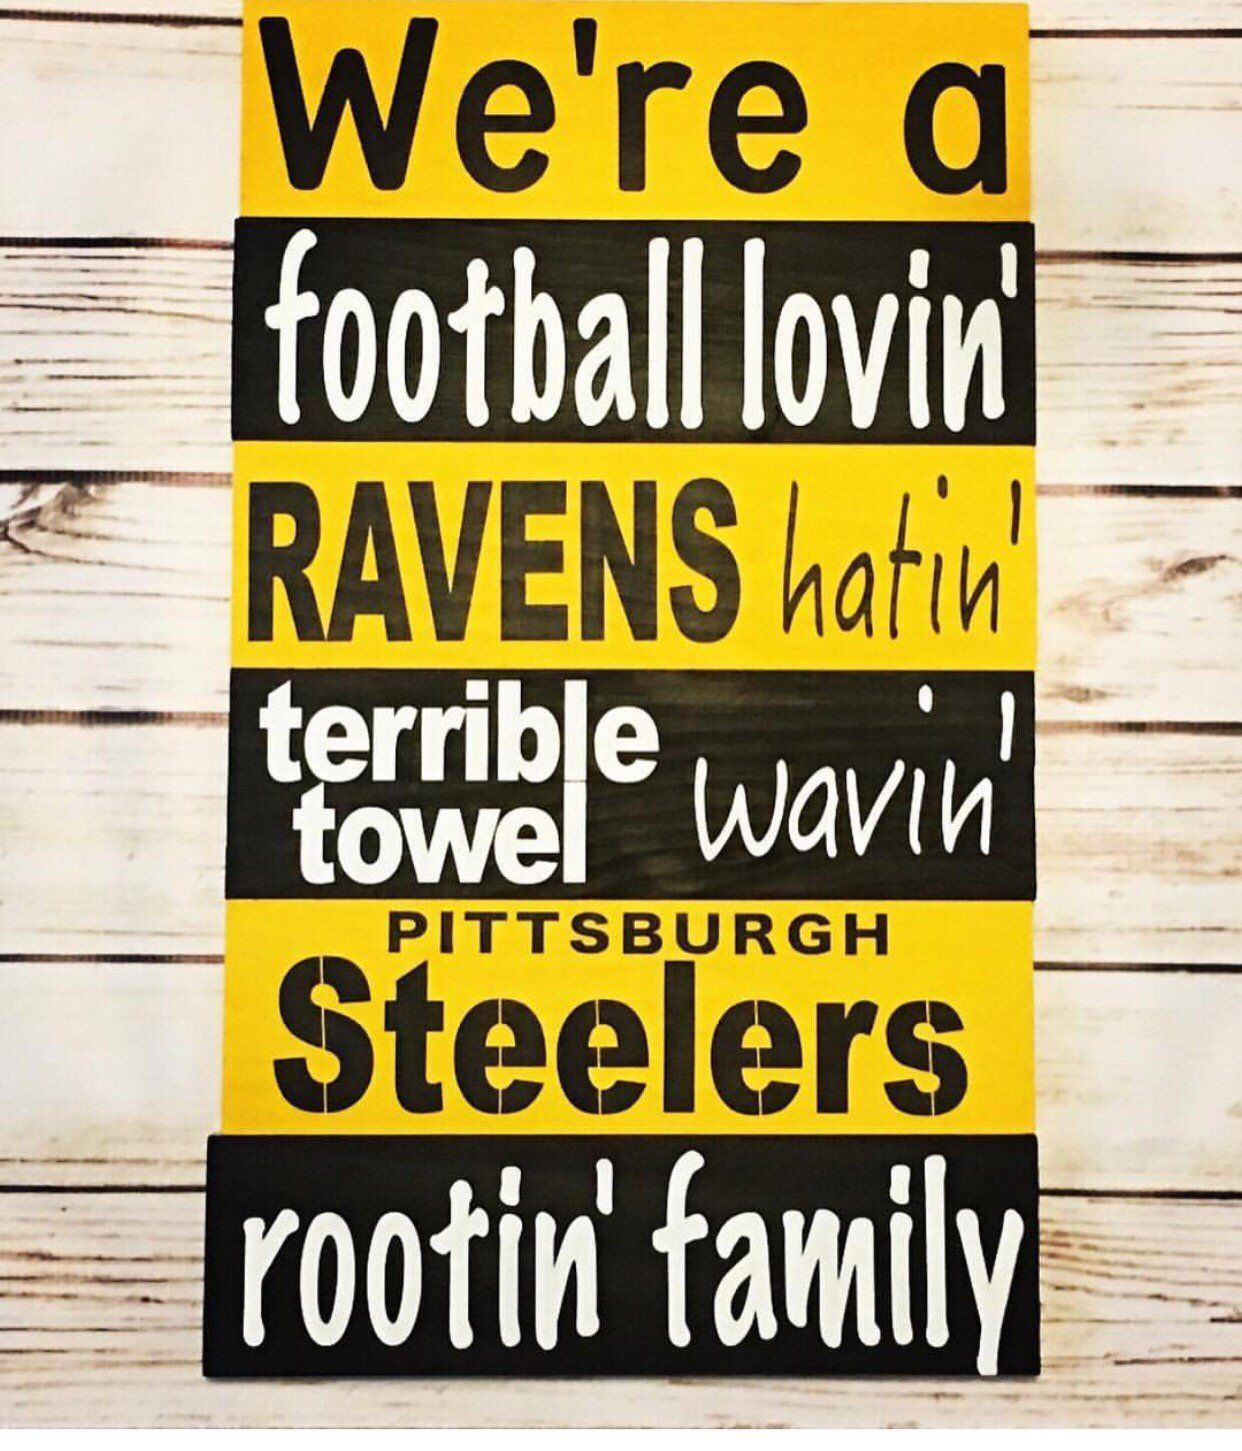 Hand painted steelers sign pine wood clear acrylic sealed custom logo saying approximately x